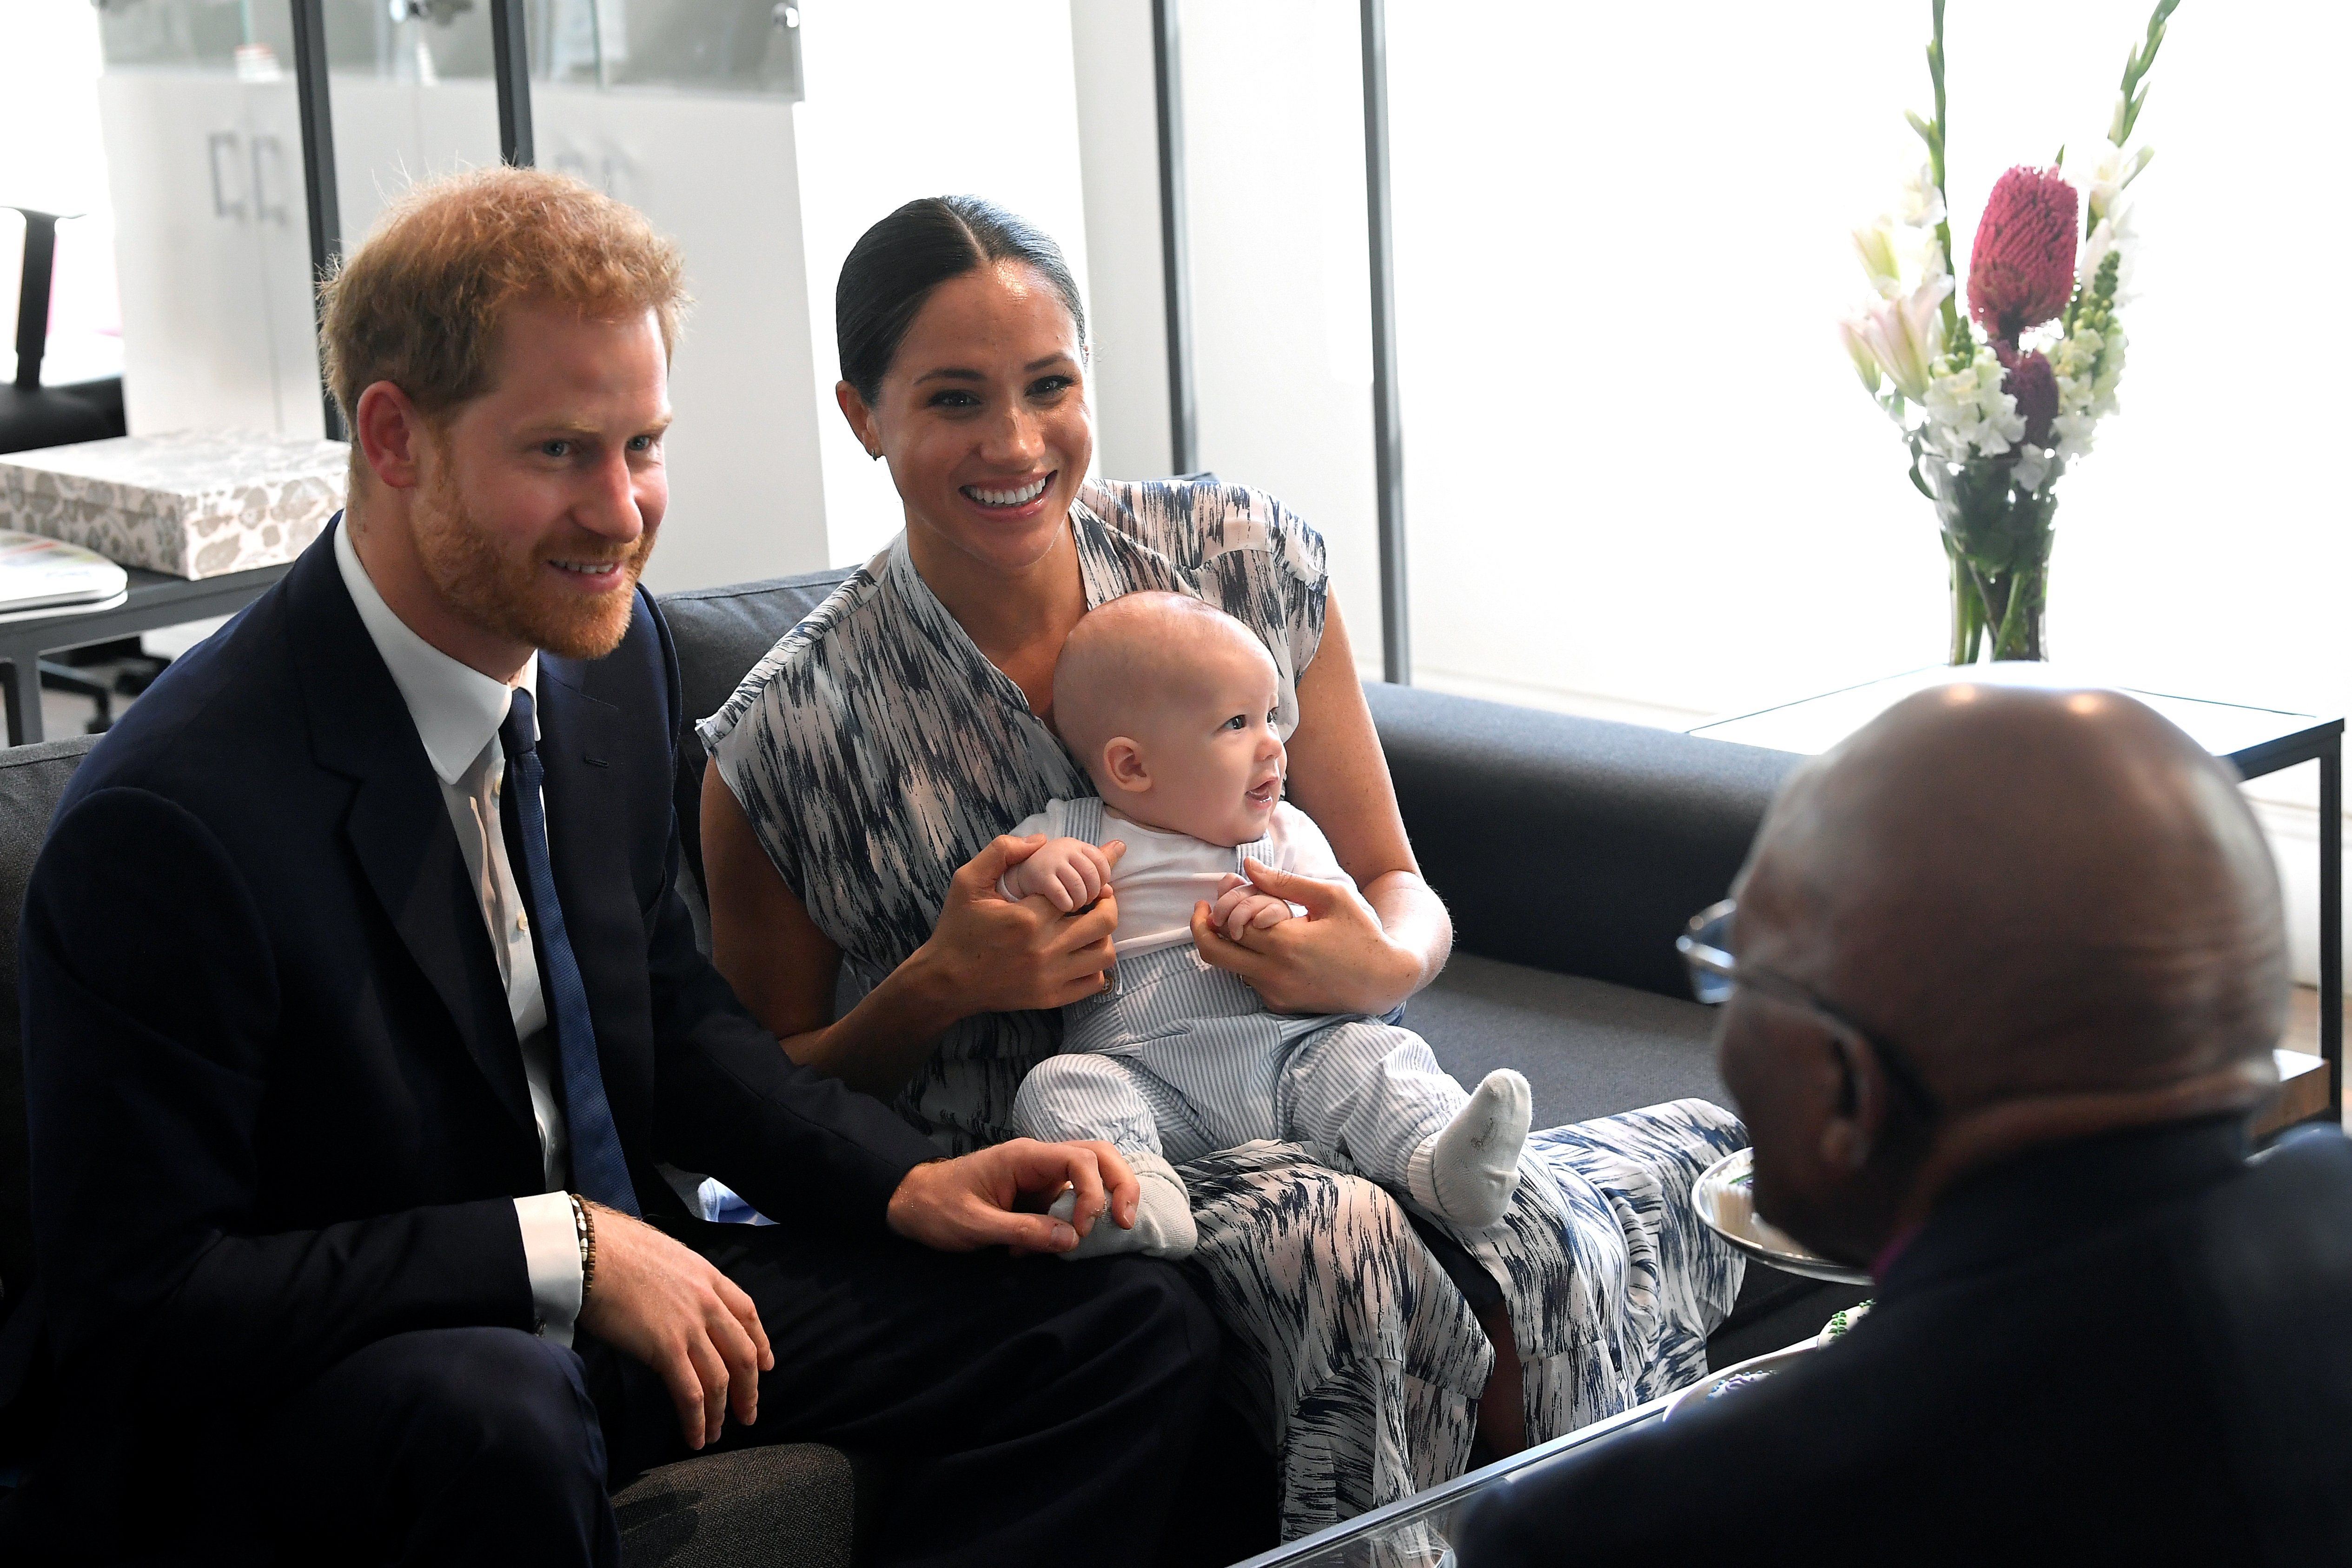 Prince Harry, Meghan Markle, and their baby son Archie meet Archbishop Desmond Tutu during their royal tour of South Africa on September 25, 2019 | Photo: GettyImages